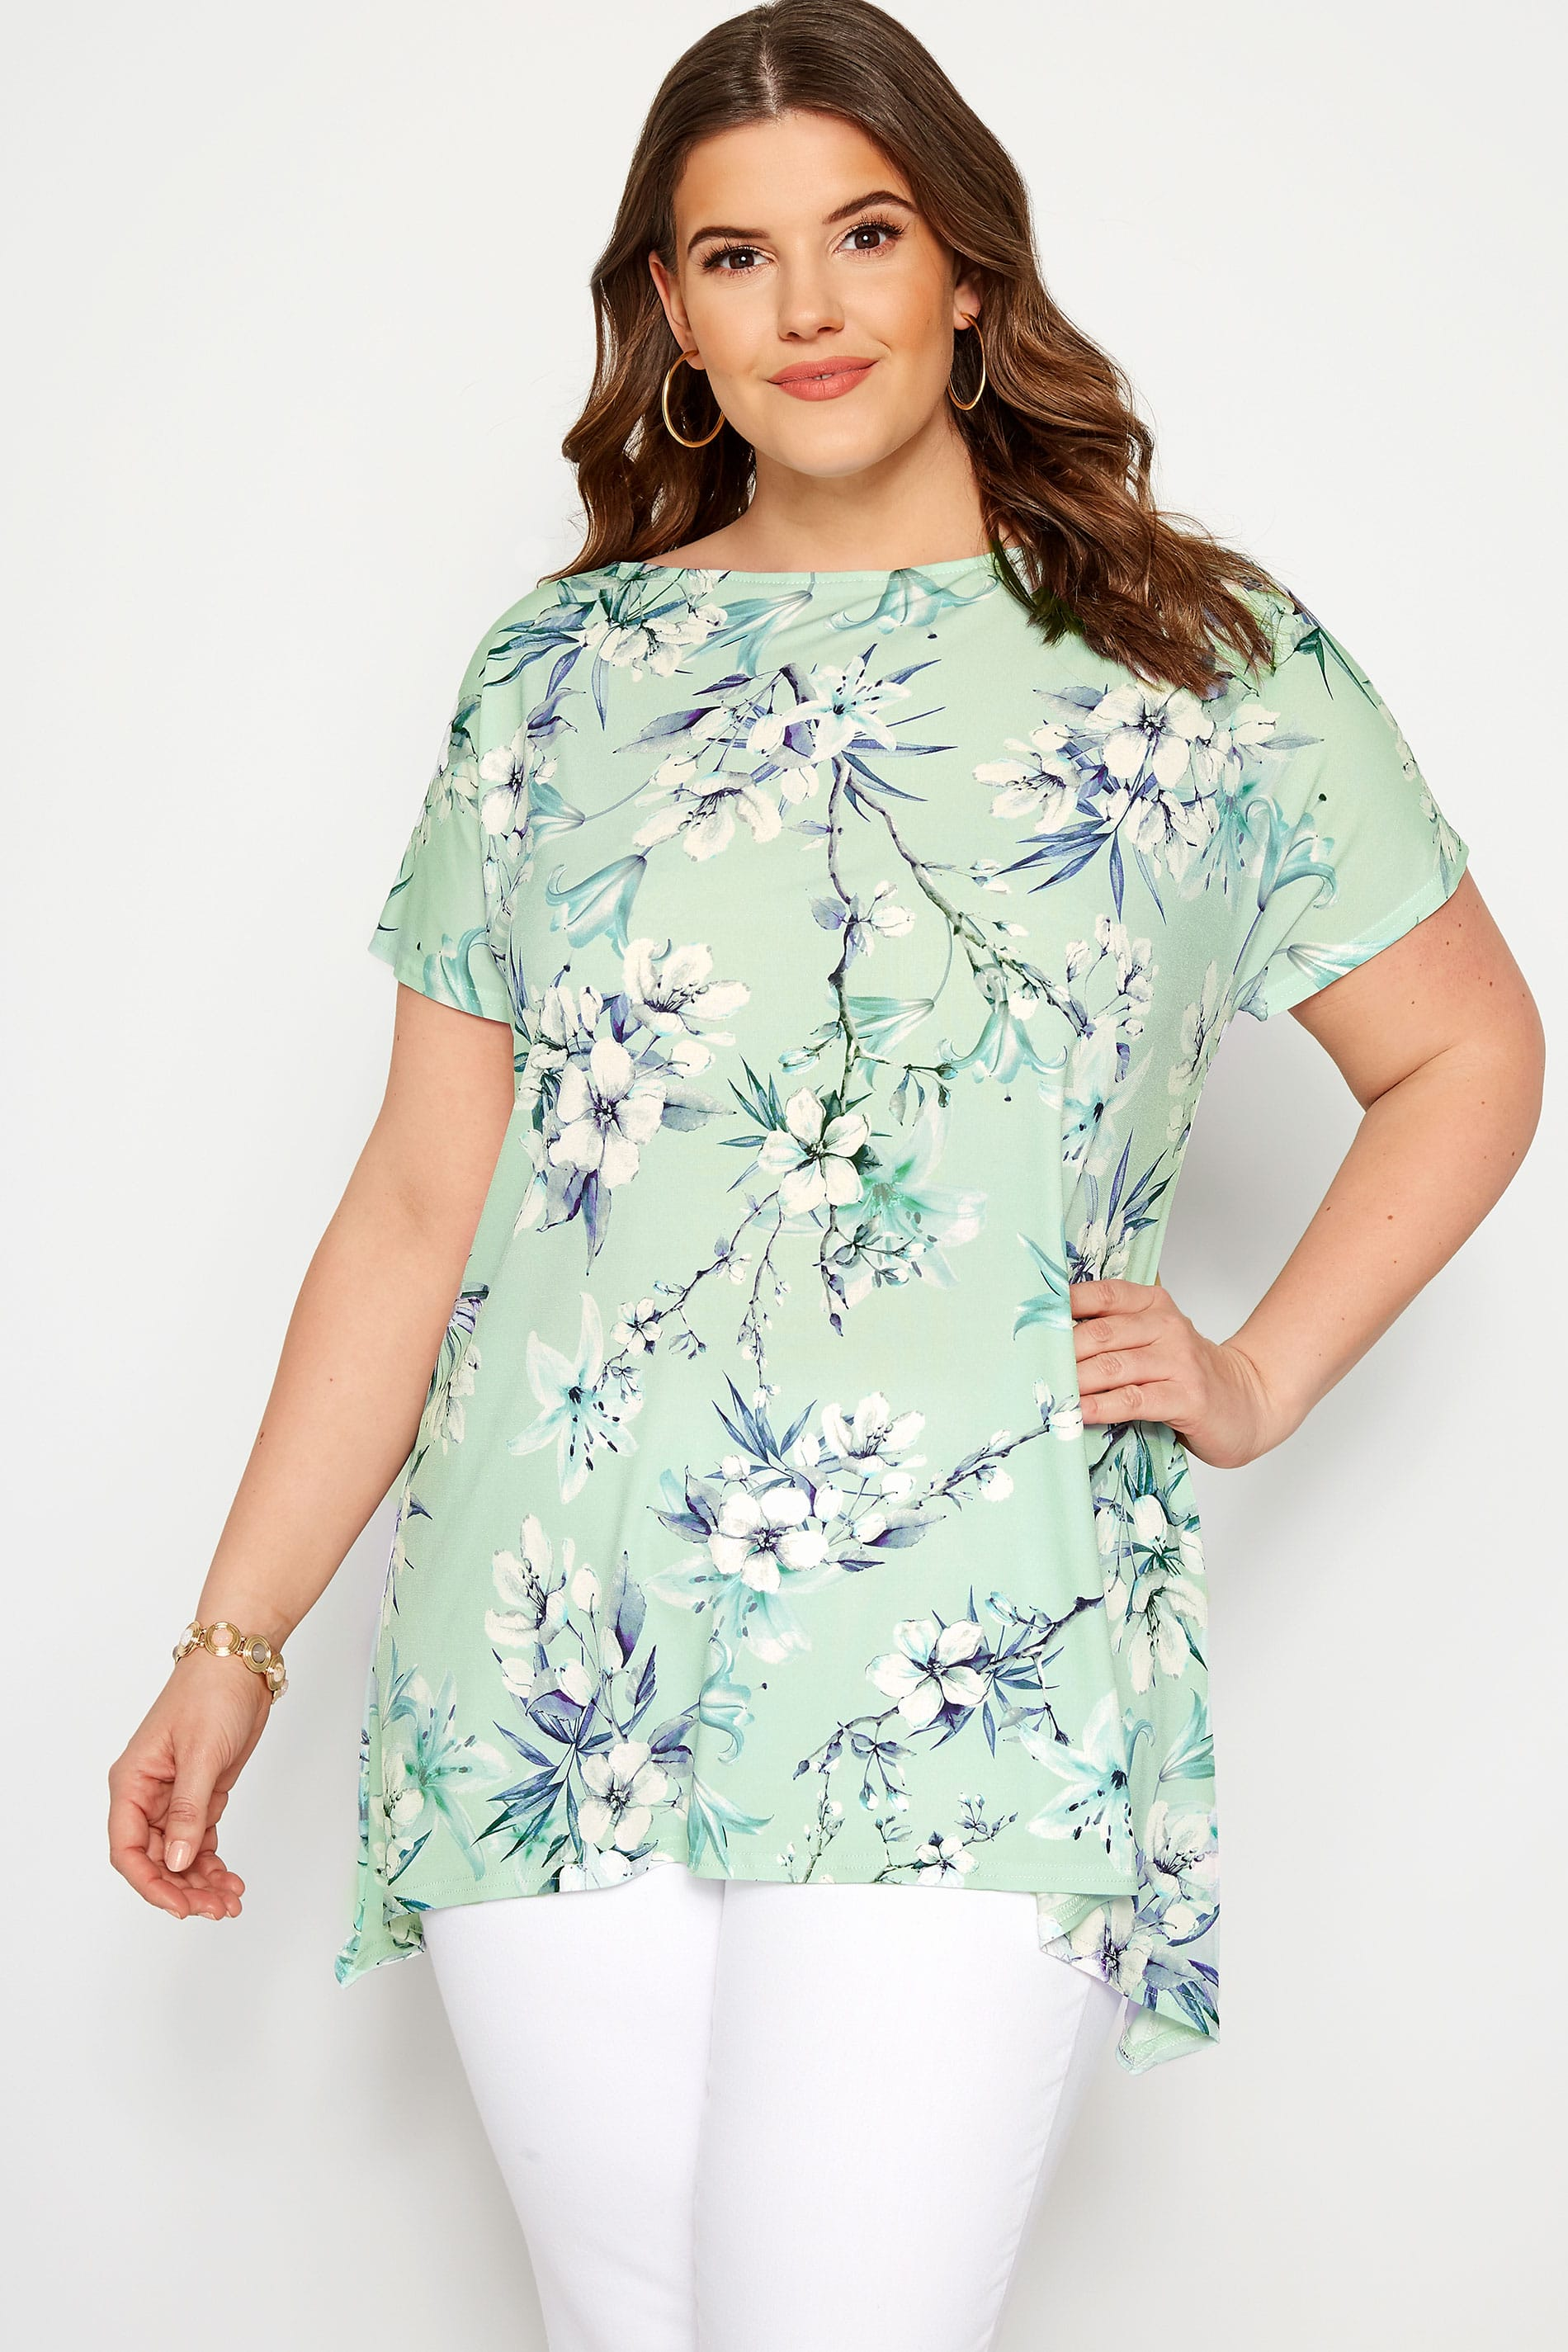 Mint Green Floral Slinky Jersey Top